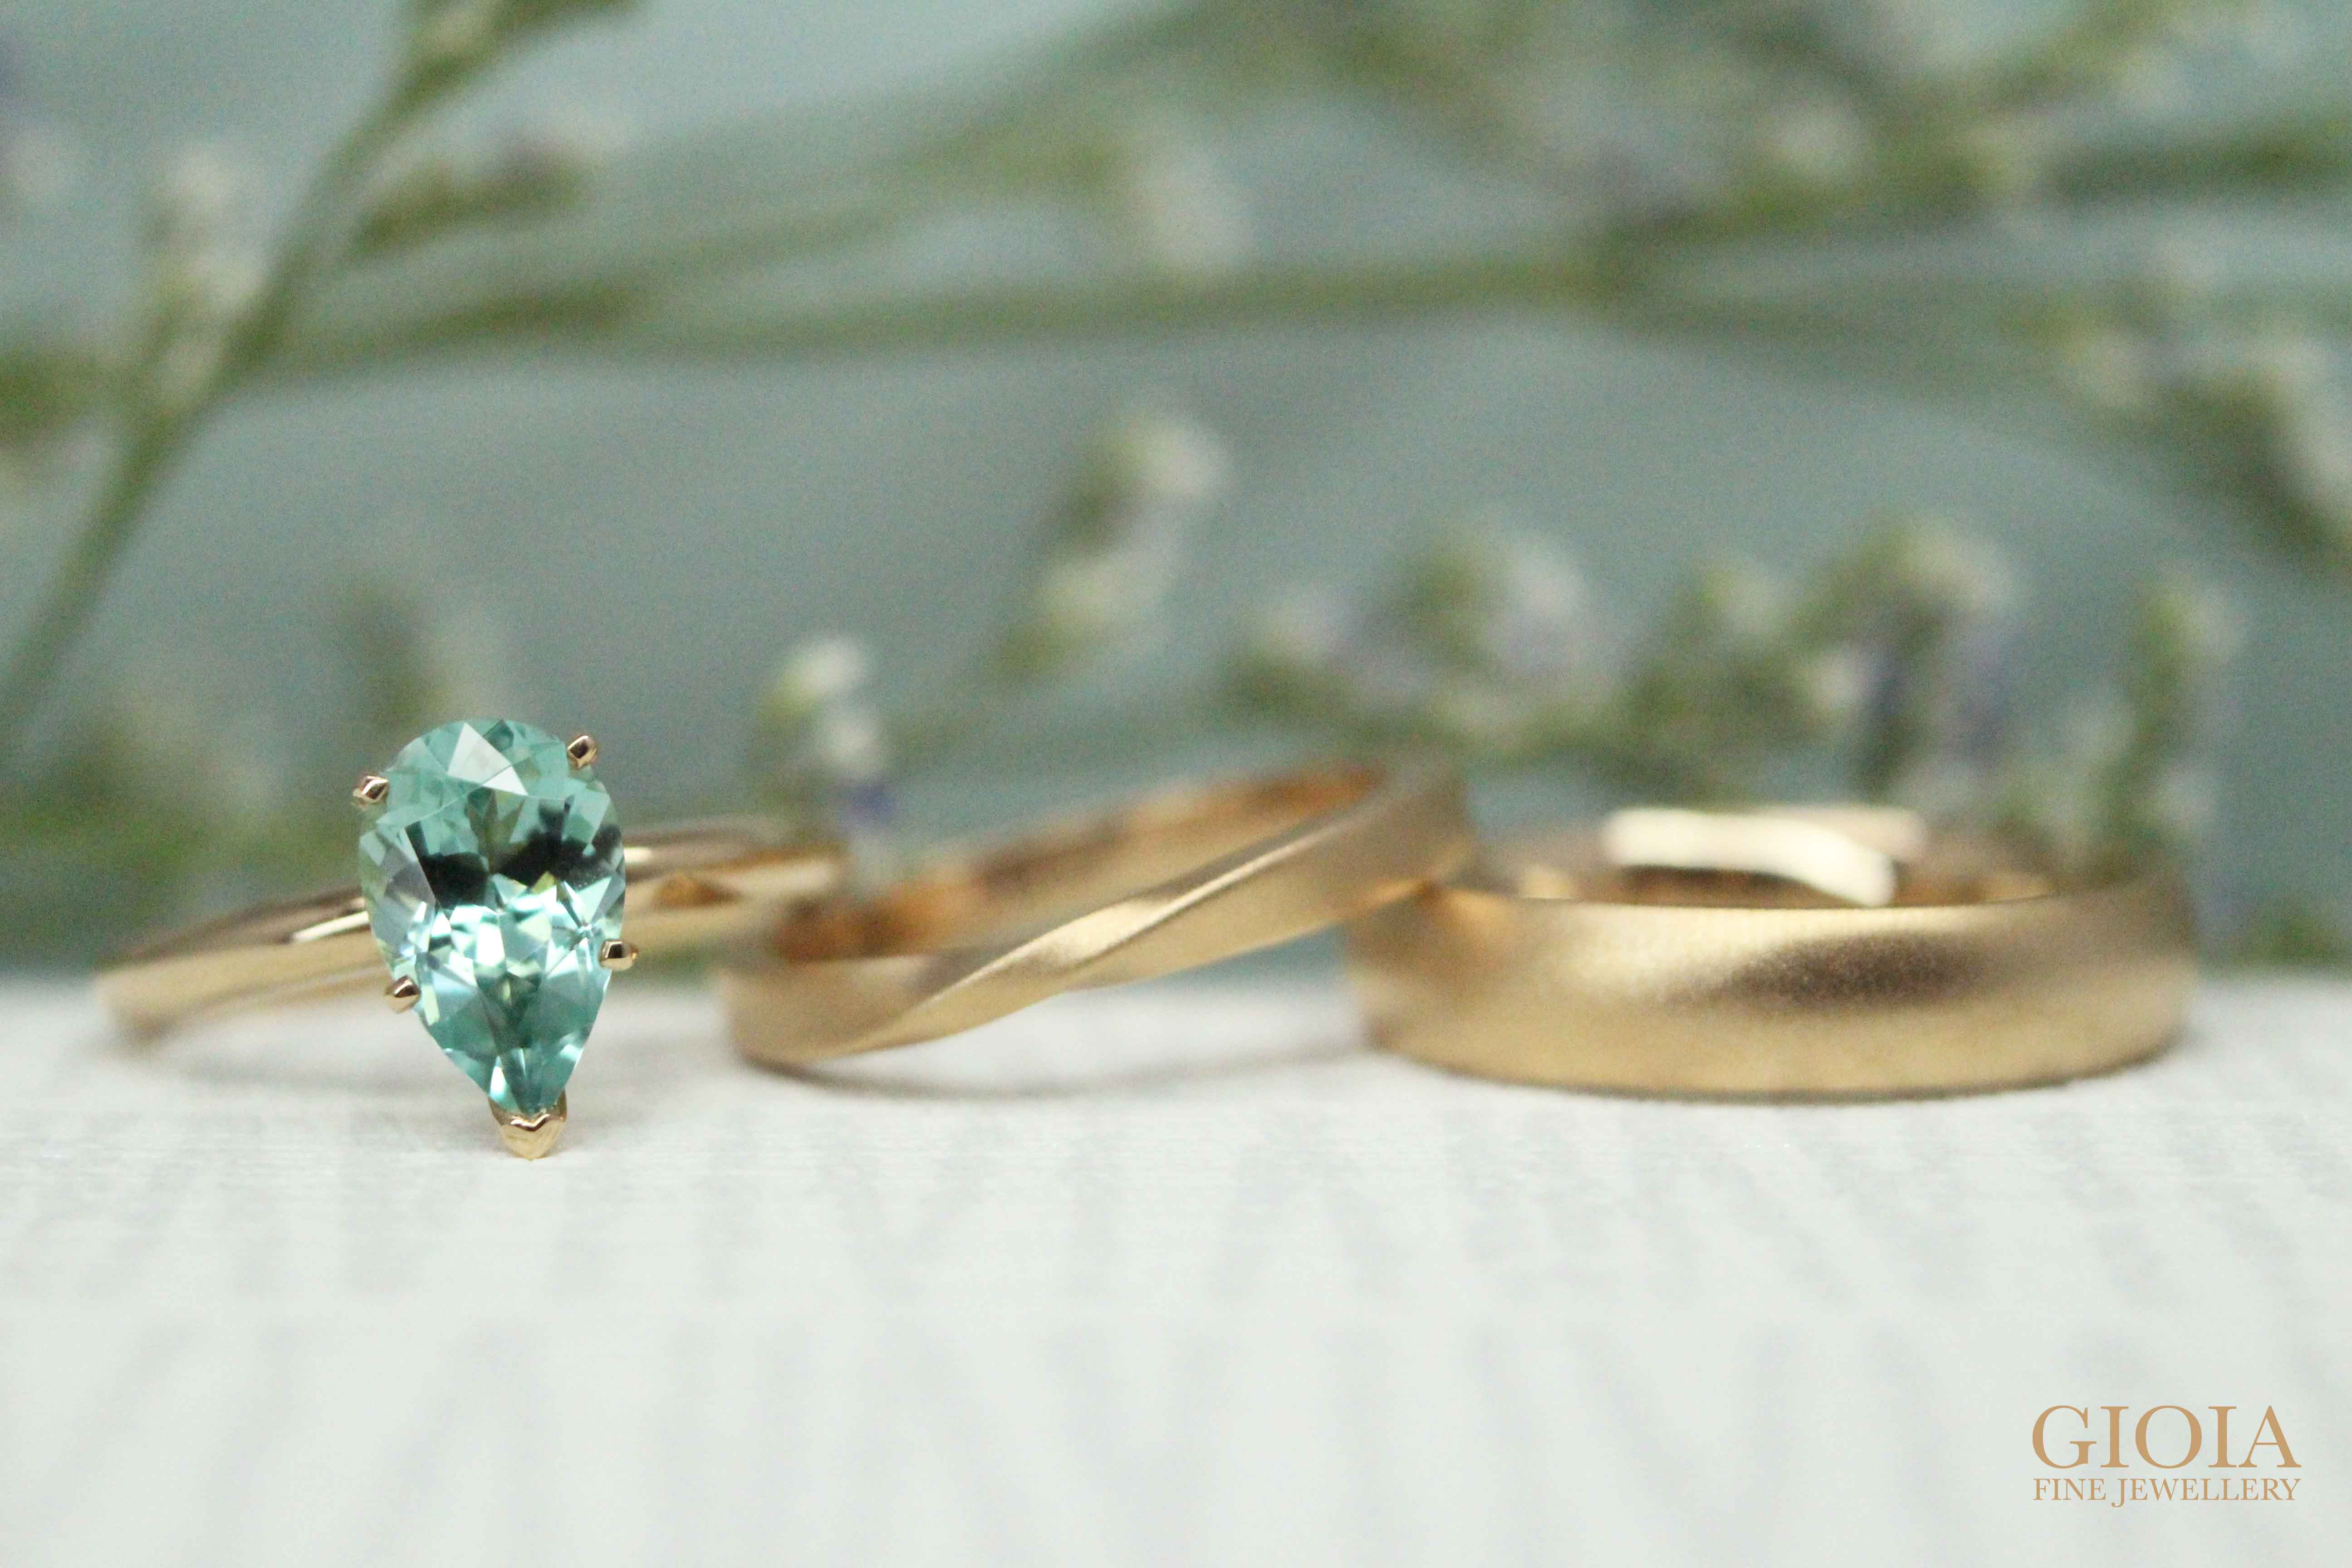 Bluish Green Tourmaline Engagement Ring with wedding bands - customised with coloured gemstone   Local Bespoke Jeweller in customised jewellery